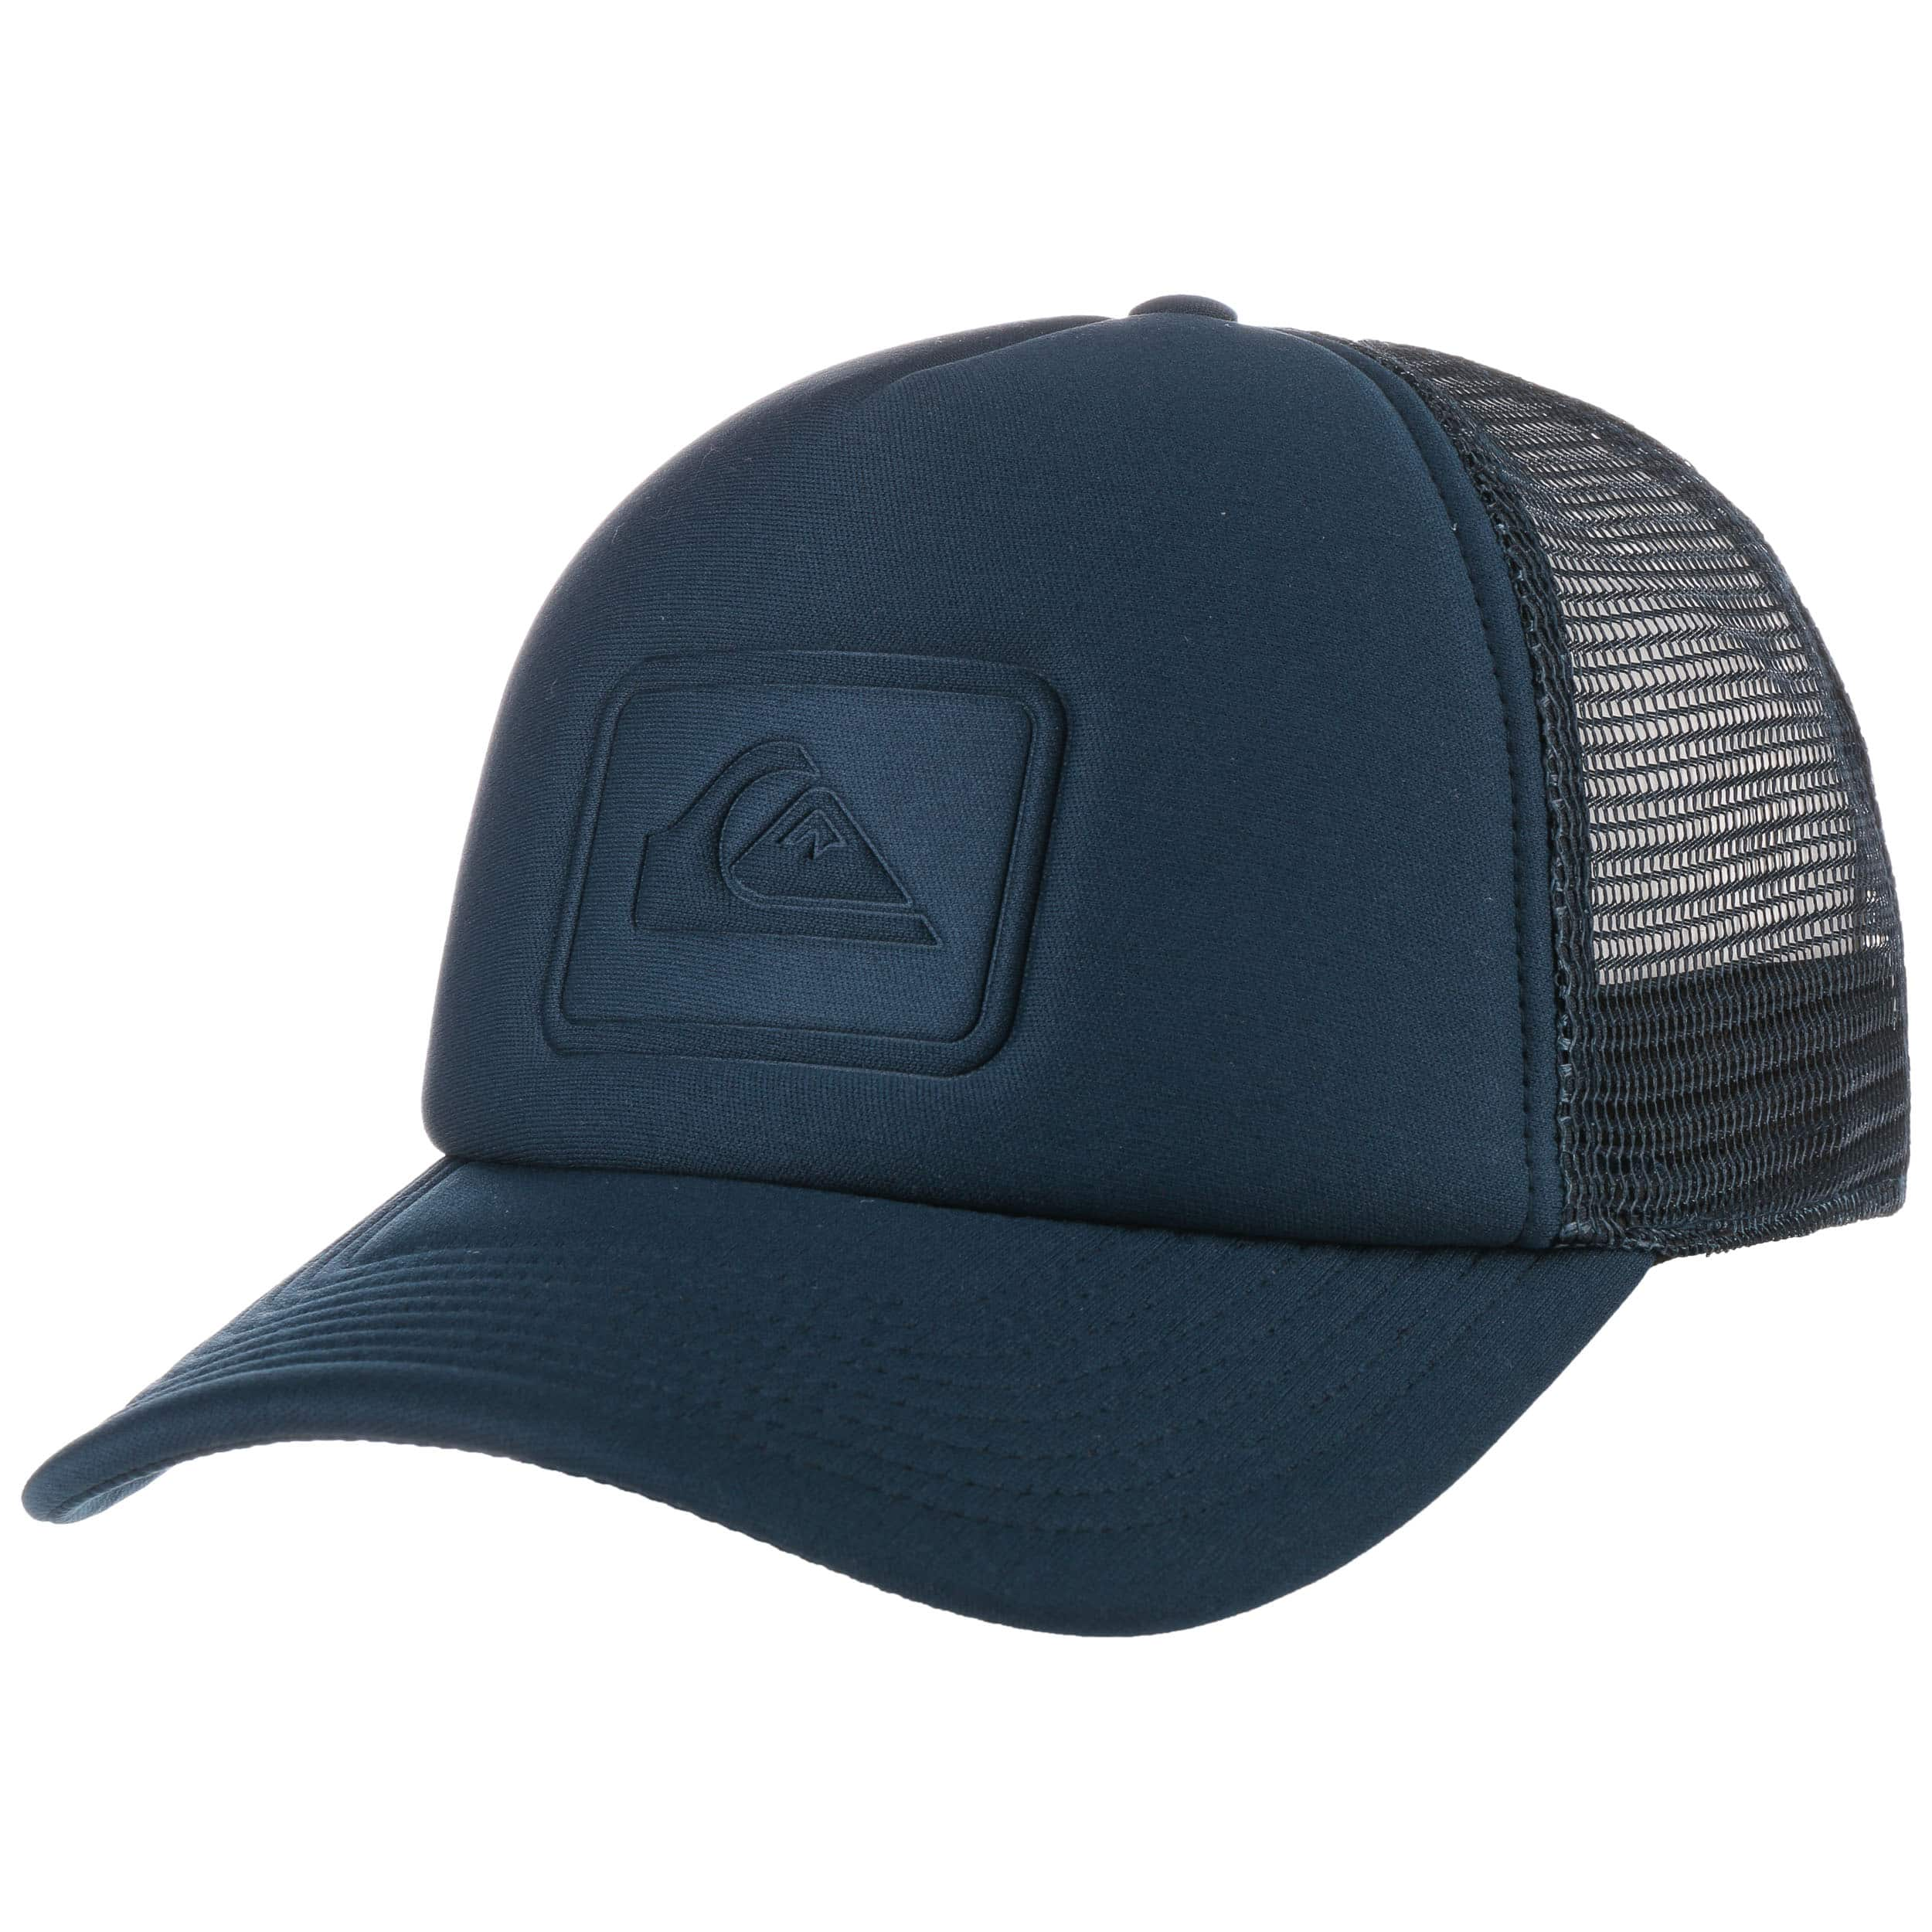 Squashed Banana Youth Trucker Cap. by Quiksilver 9531bb993dc